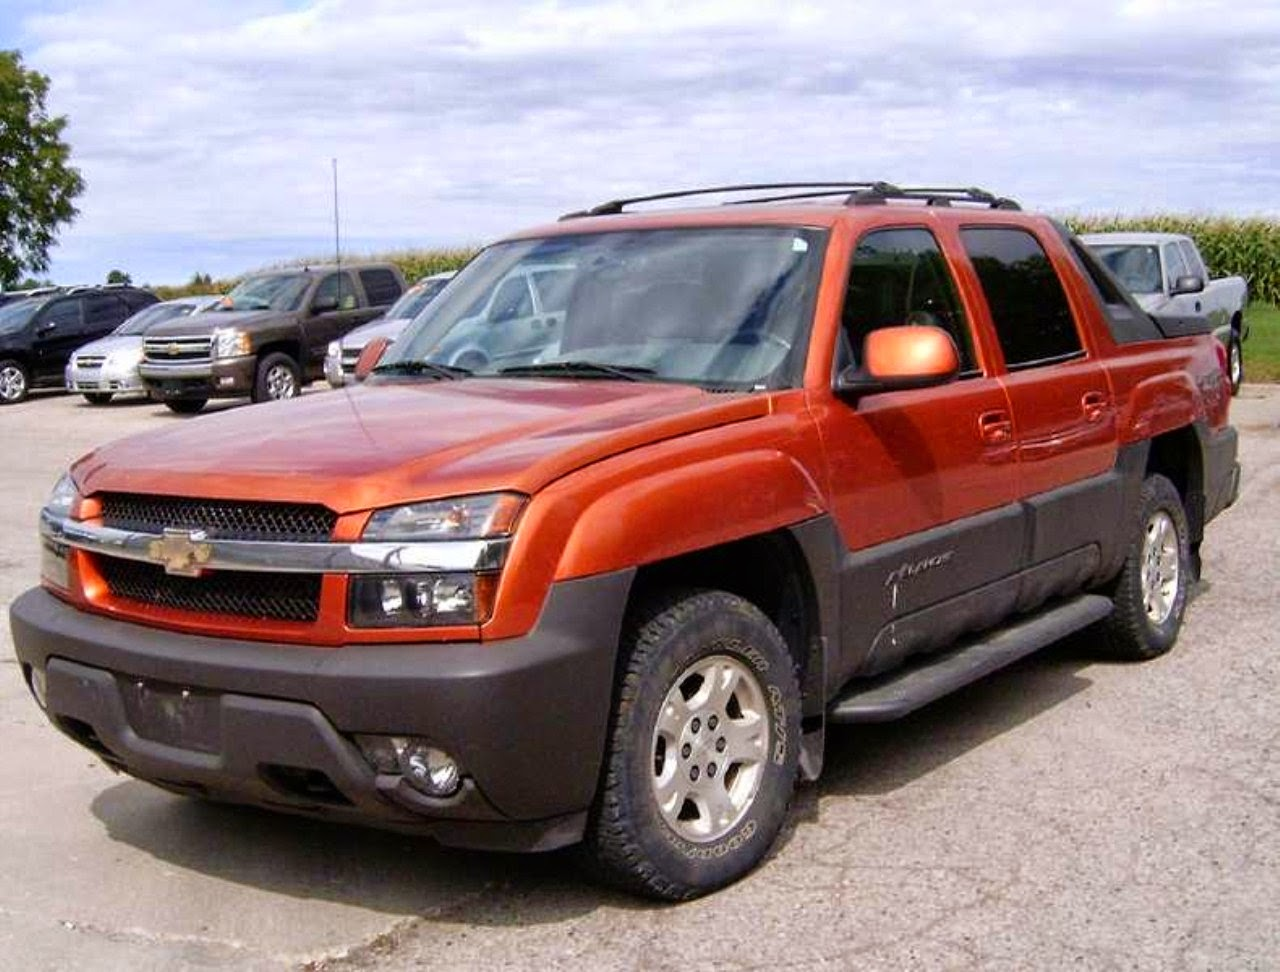 2015 Chevrolet Avalanche Car Prices Pictures Best Prices